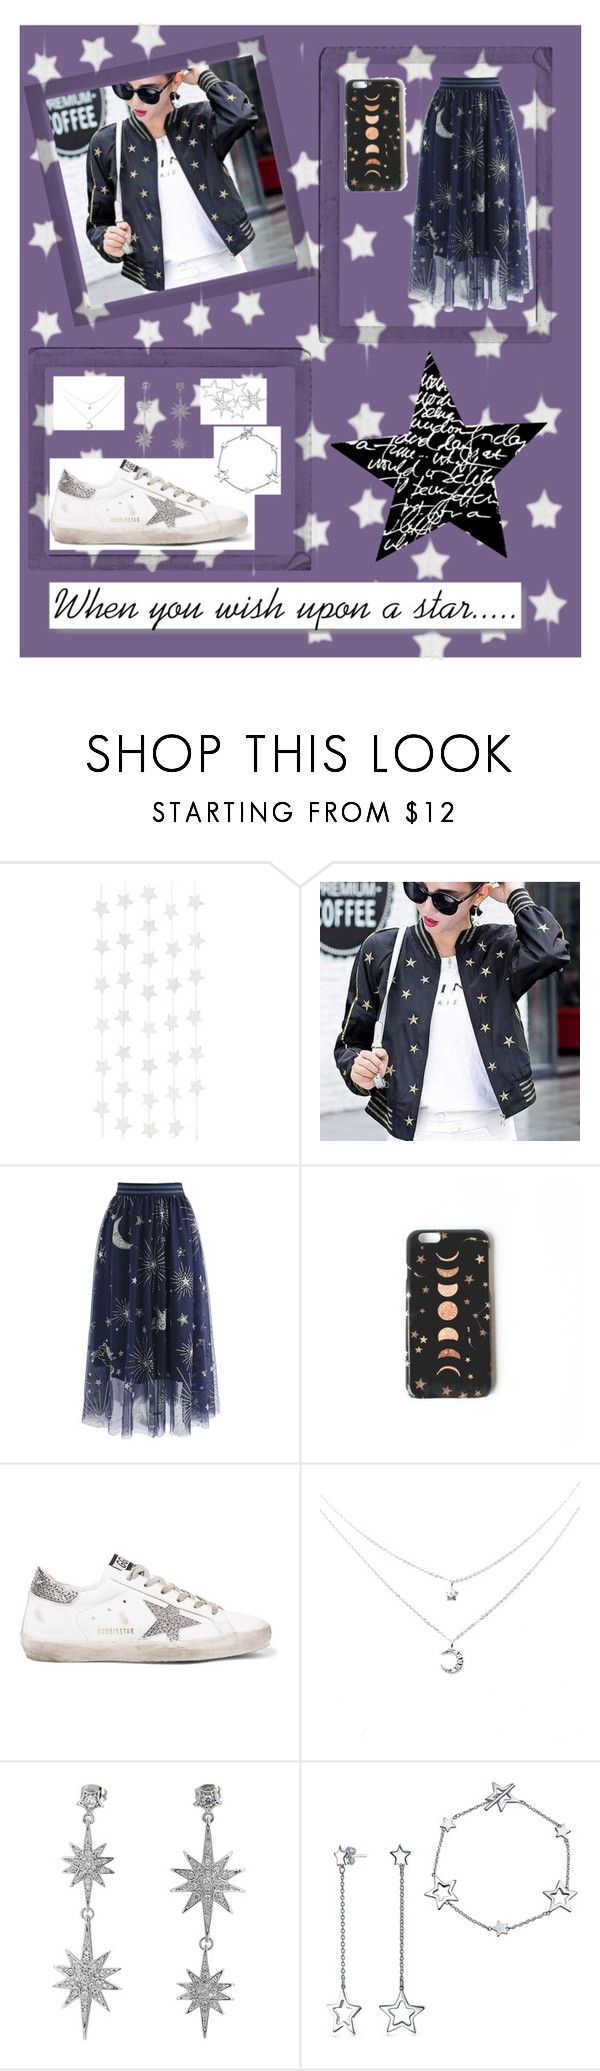 """""""When you wish upon a star......"""" by kloveskats ❤ liked on Polyvore featuring White Label, Polaroid, Chicwish, Nikki Strange, Golden Goose, Betsey Johnson, Bling Jewelry, Love Rocks and StarOutfits"""